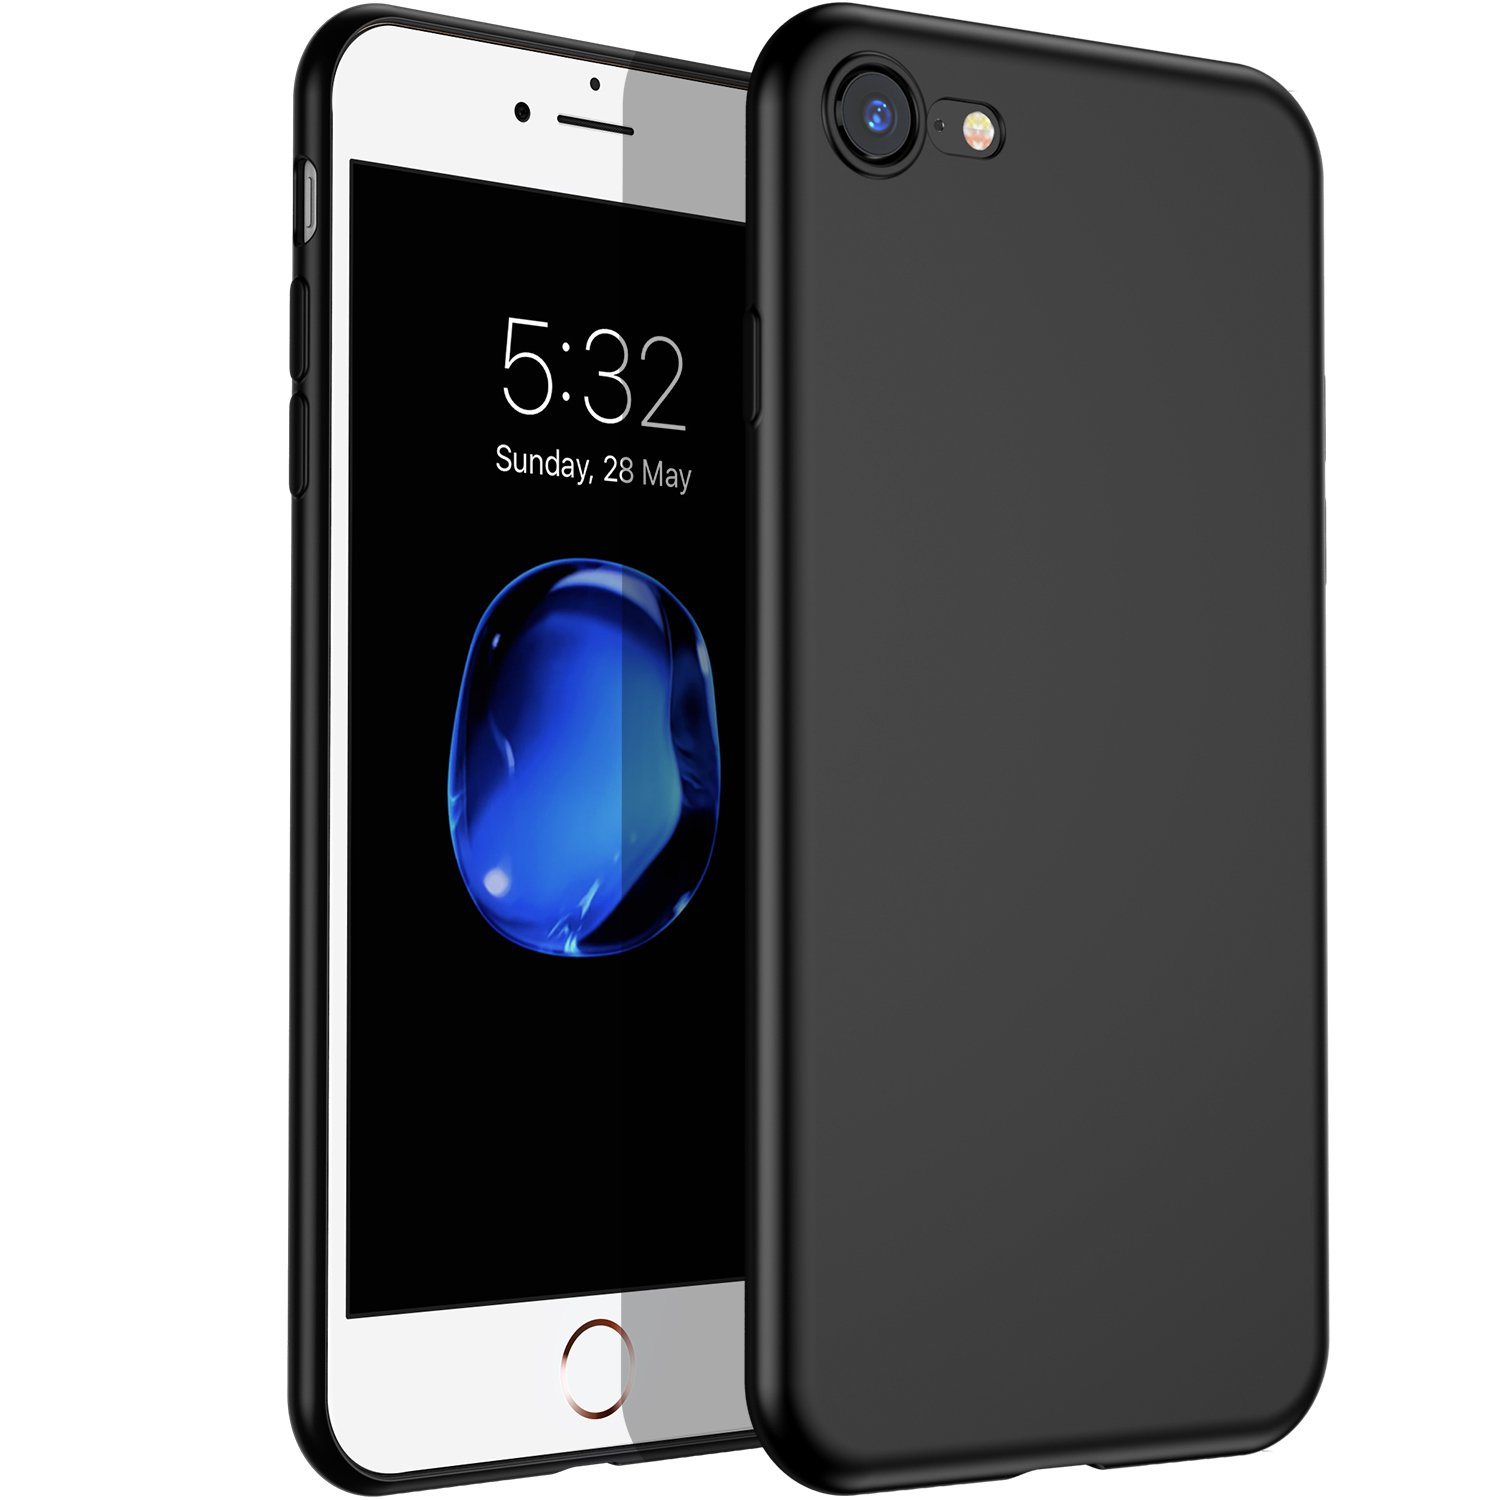 VANMASS iPhone 7/8 Case, Ultra Thin Slim Soft TPU Phone Case with Shock Absorption for iPhone 7/8